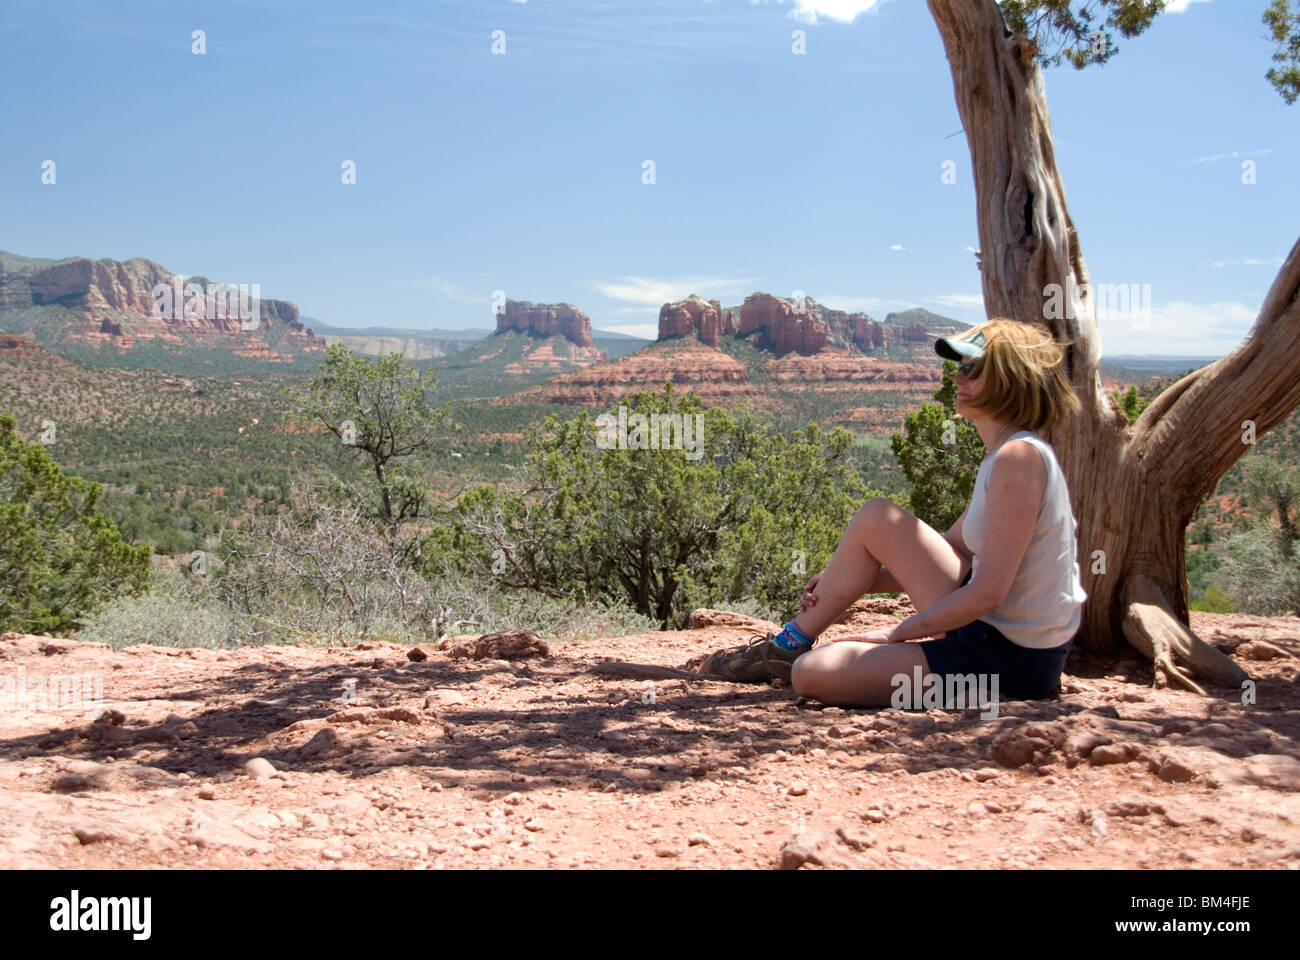 Woman looking at view outside Sedona Arizona USA North America a healing and spiritual center for vortexes and psychics - Stock Image